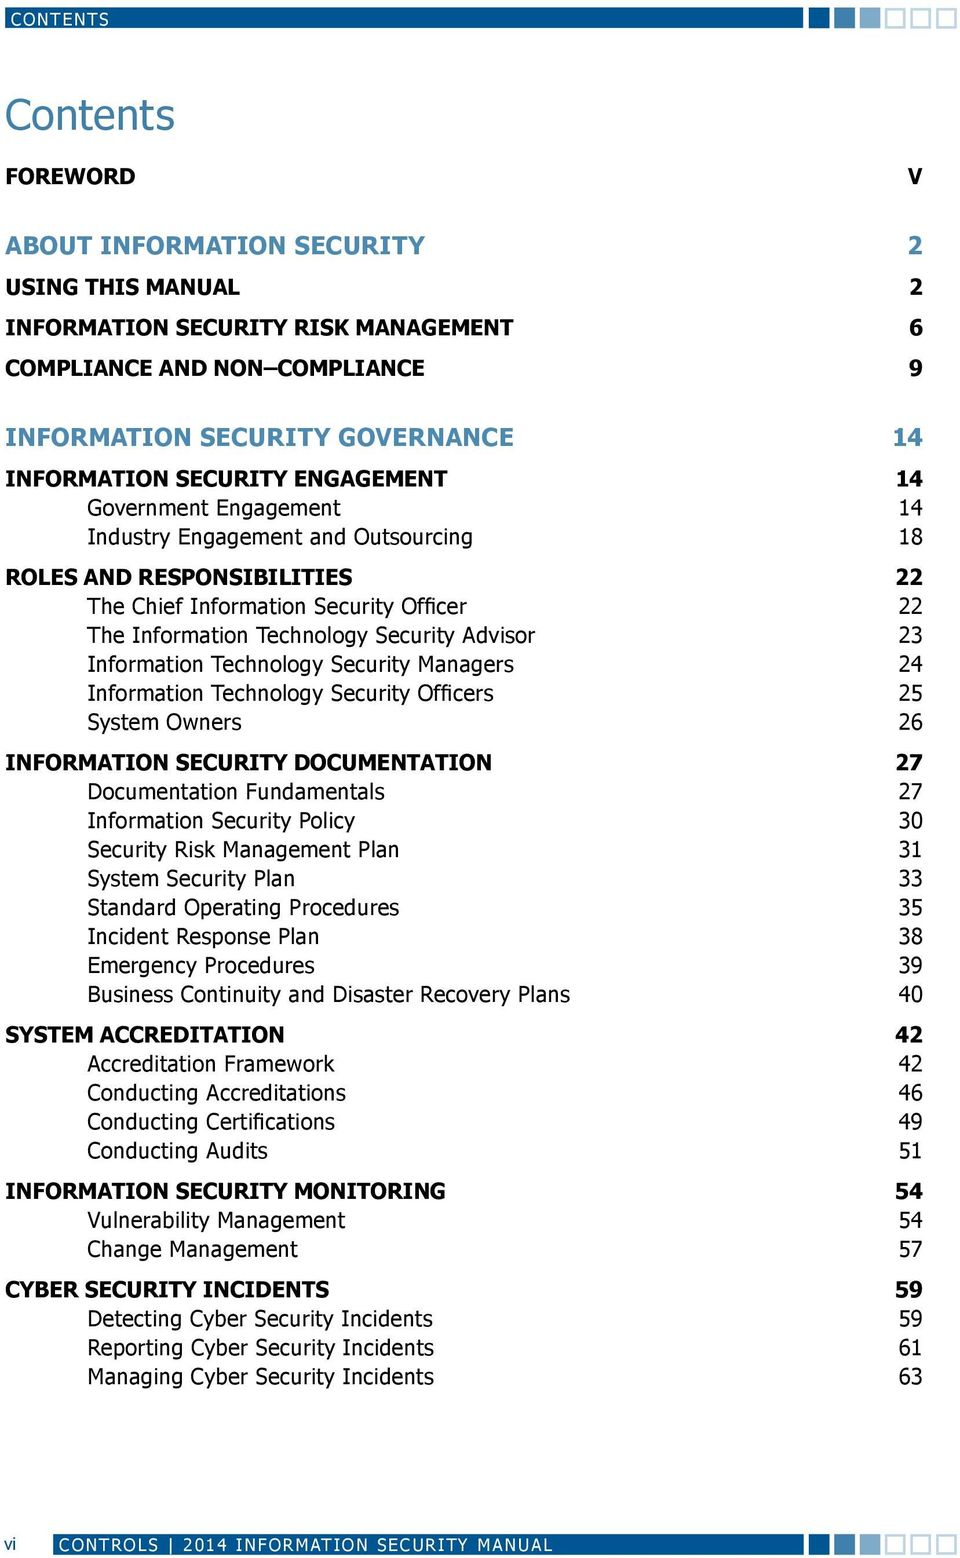 Advisor 23 Information Technology Security Managers 24 Information Technology Security Officers 25 System Owners 26 INFORMATION SECURITY DOCUMENTATION 27 Documentation Fundamentals 27 Information